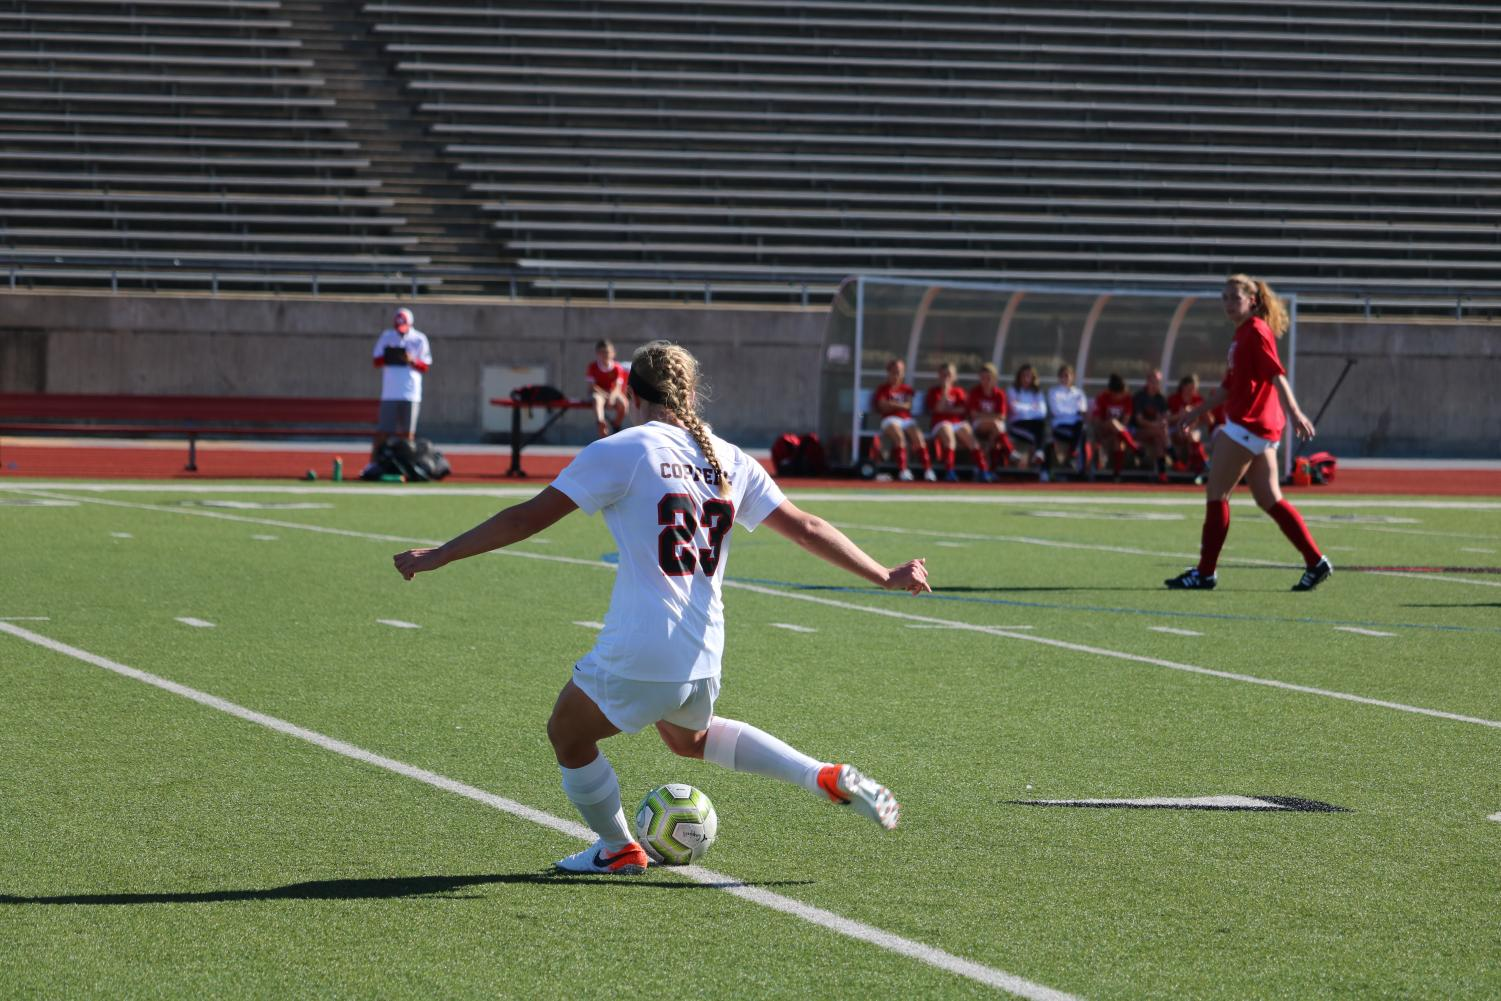 Coppell sophomore defender Bailey Peek crosses a free kick into the box on Saturday at Buddy Echols Field. The Coppell Cowgirls defeated the Lady Tigers, 2-0.